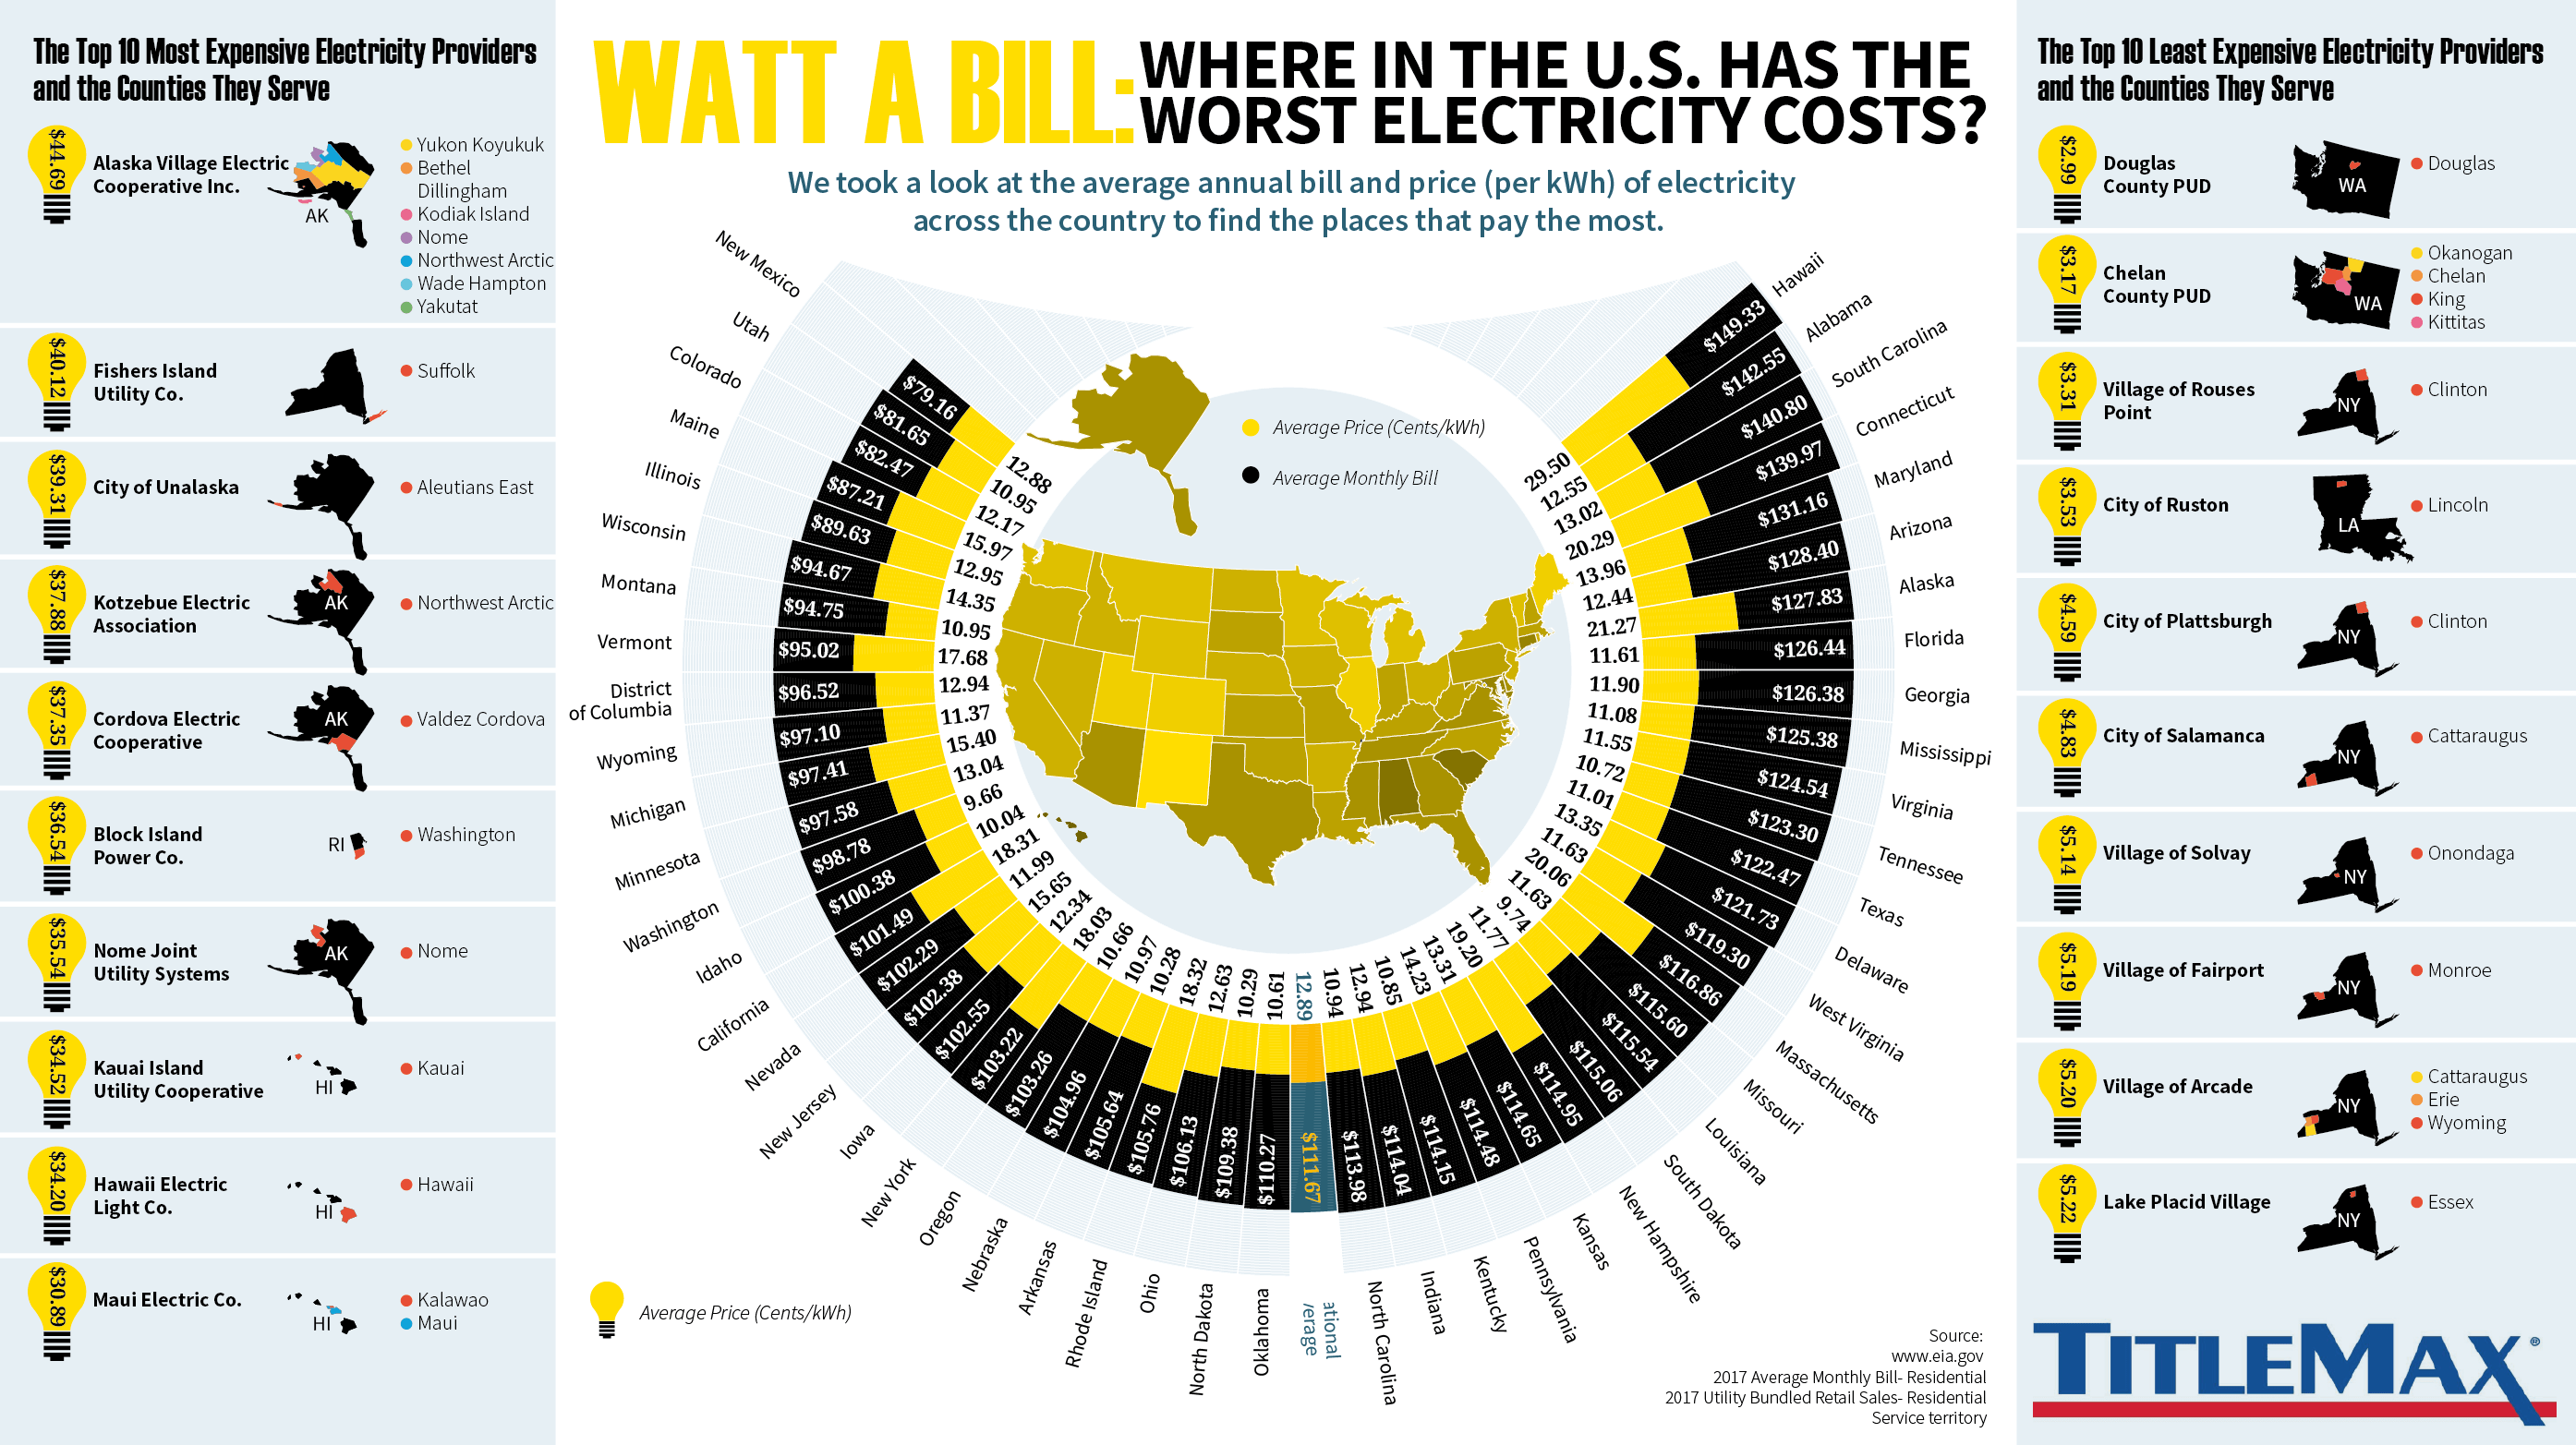 Where in United States Worst Electricty Costs